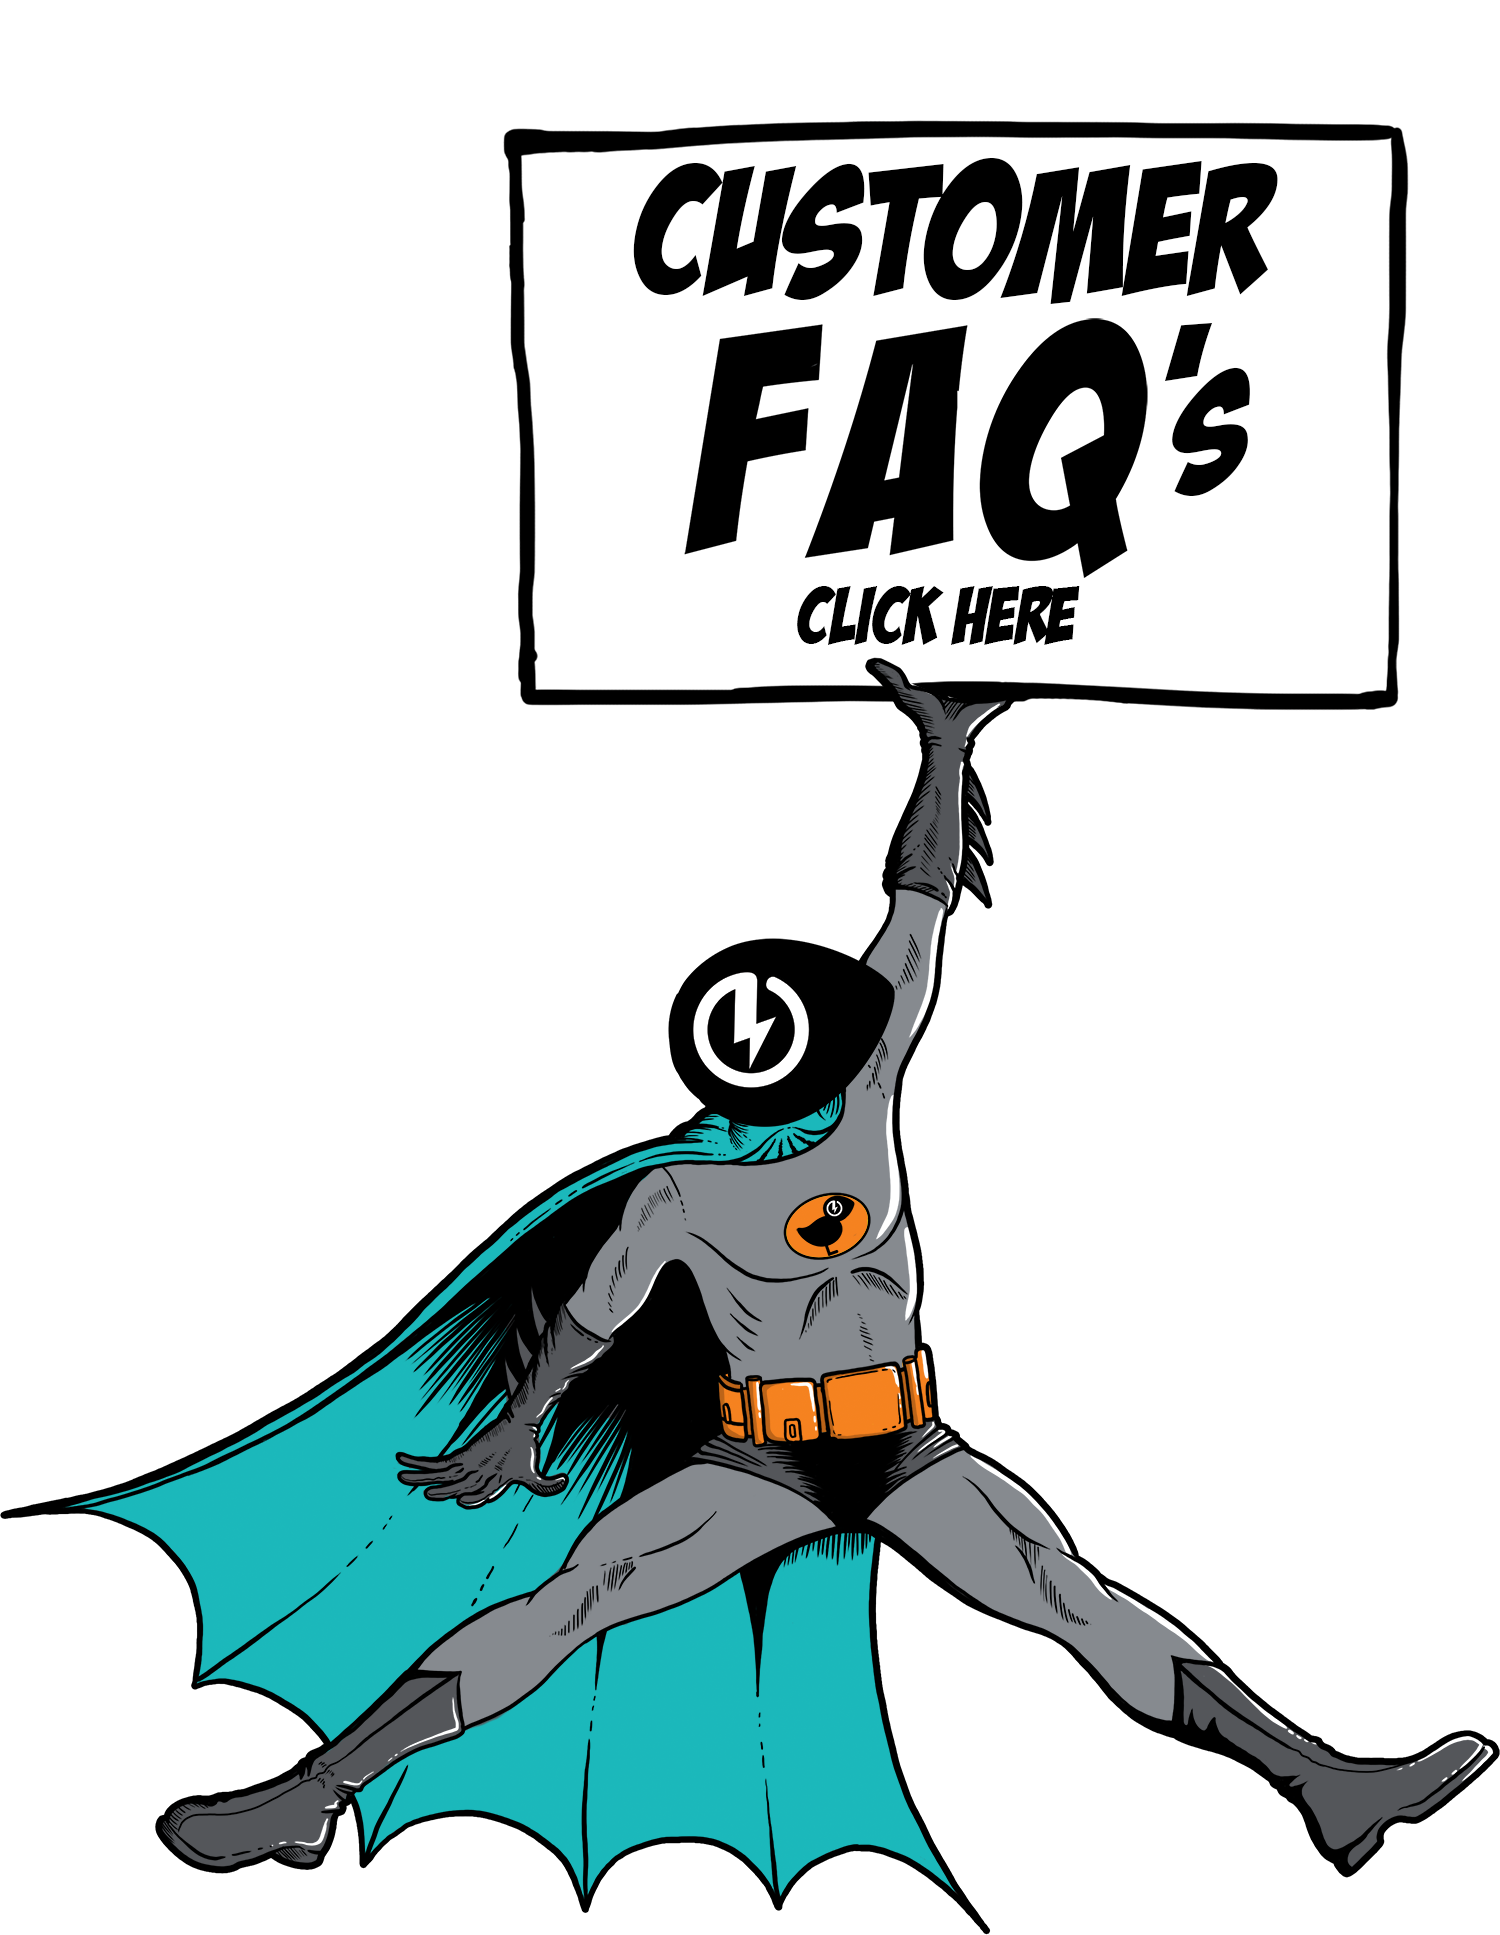 Customer FAQ's